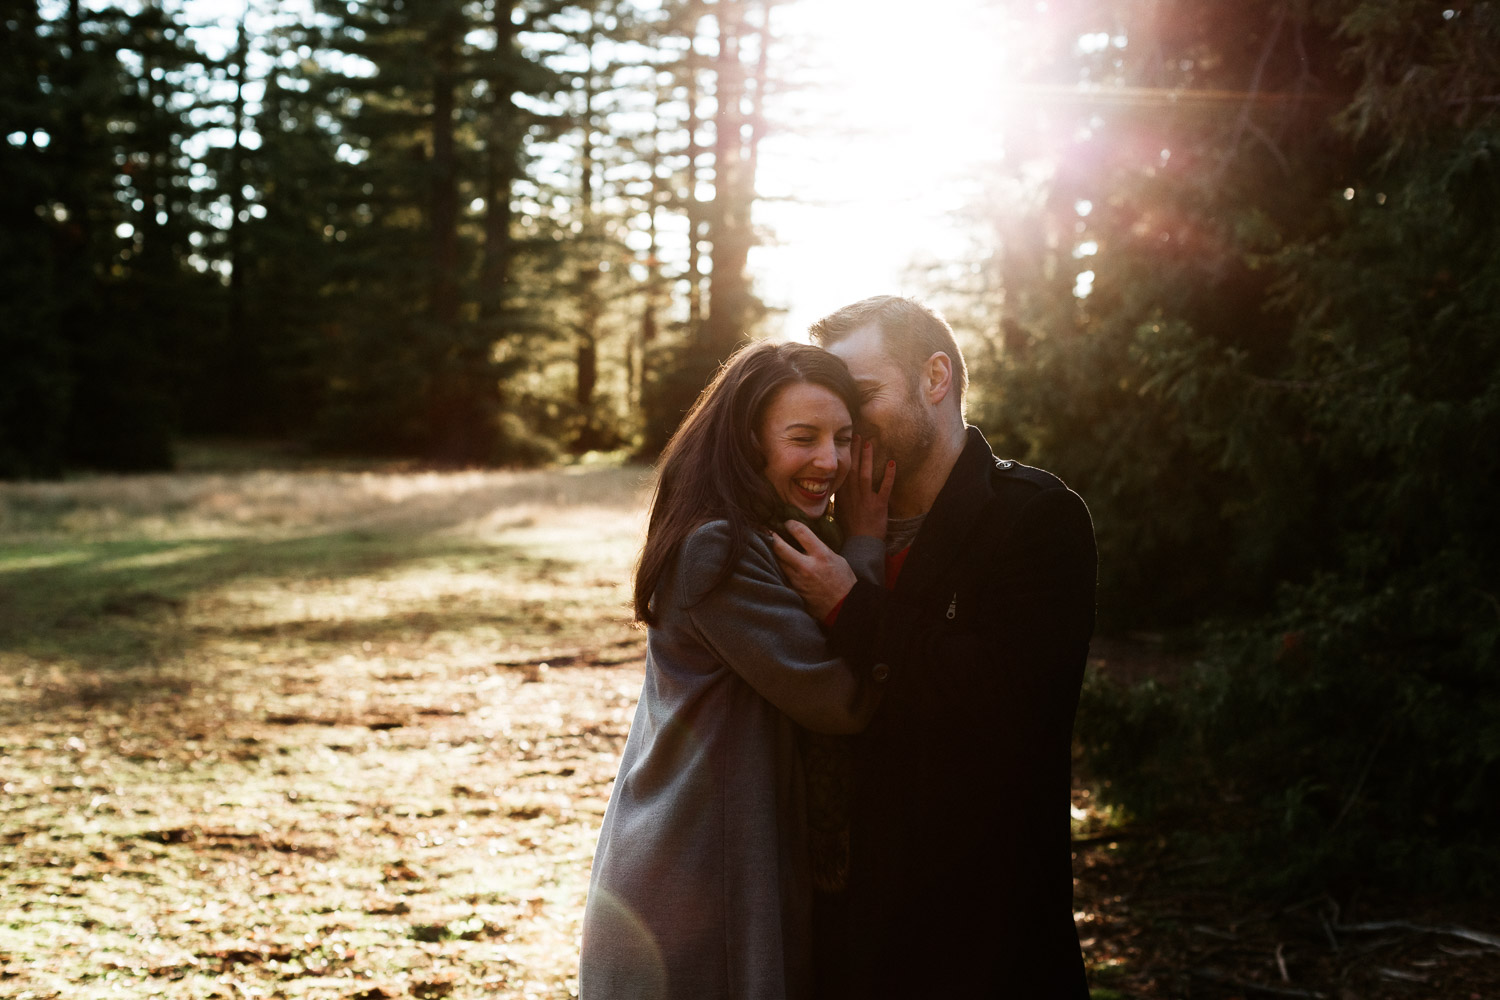 canberra-engagement-photographer-natural-candid-documentary-portrait